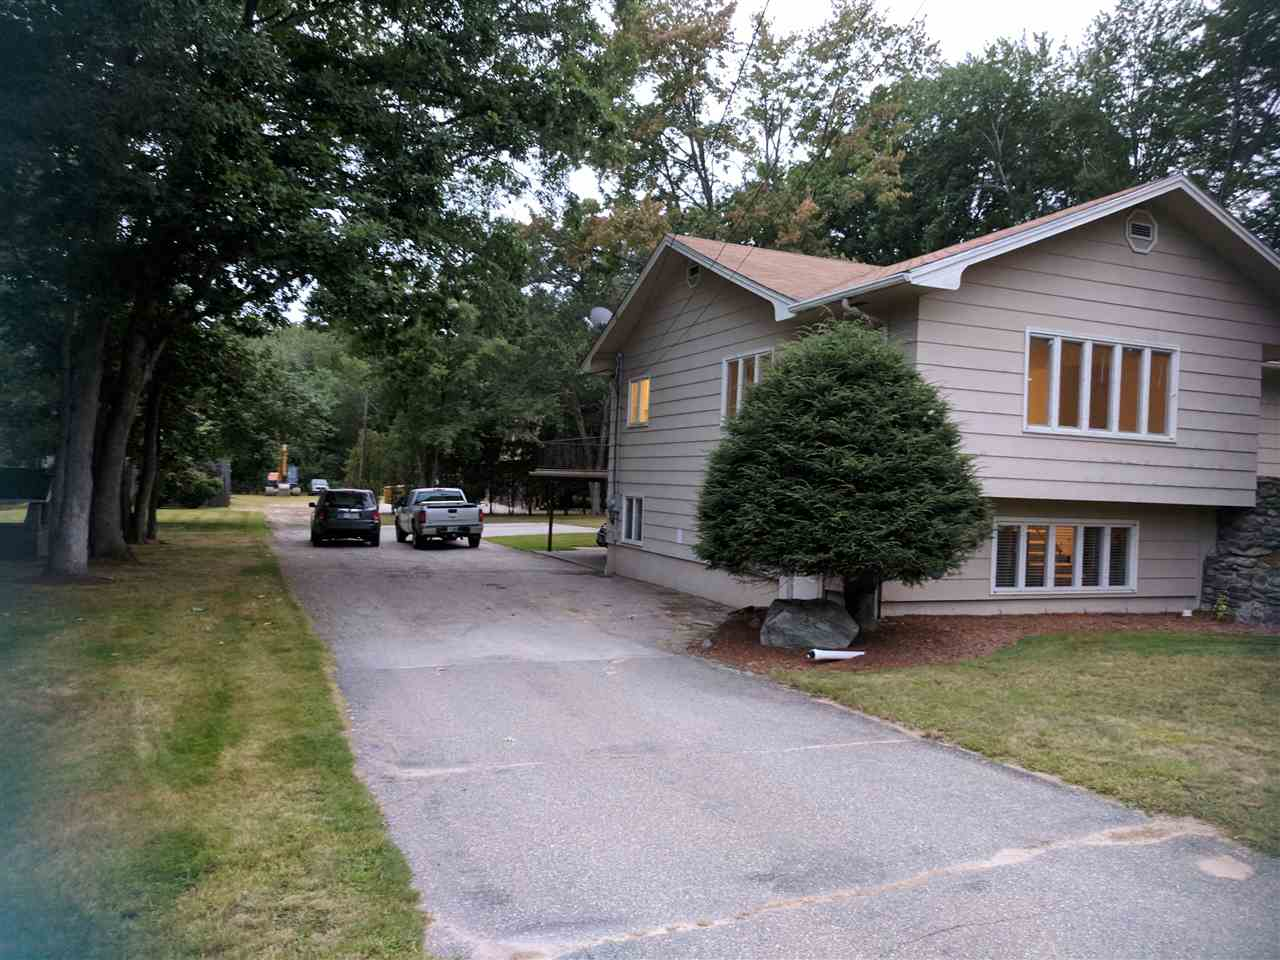 HUDSON NH Multi-Family for rent $Multi-Family For Lease: $2,100 with Lease Term